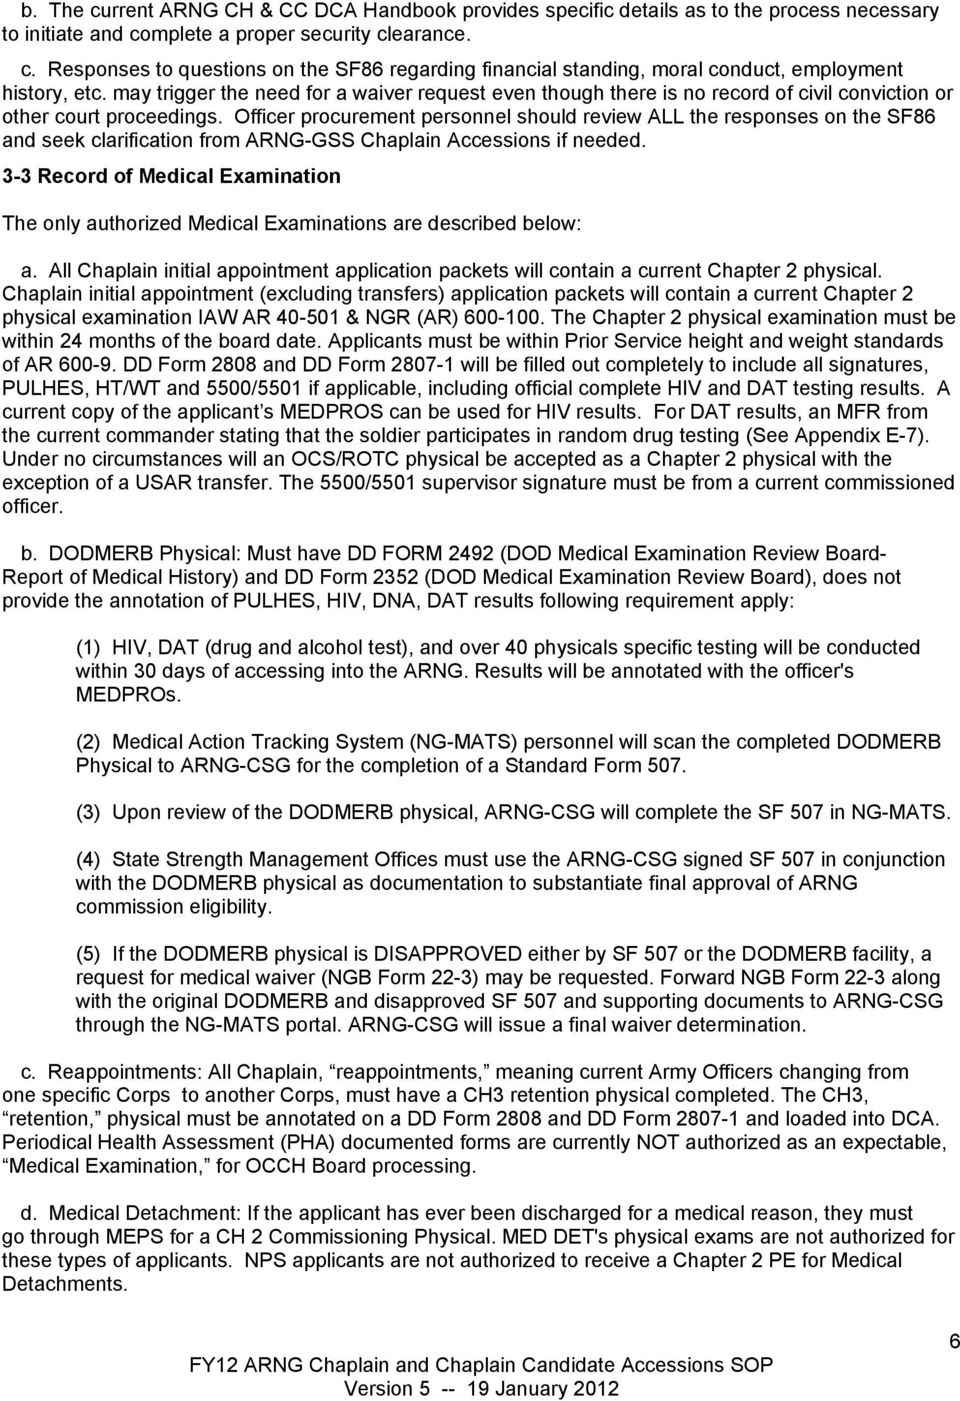 FY12 ARMY NATIONAL GUARD STANDARD OPERATING PROCEDURES FOR